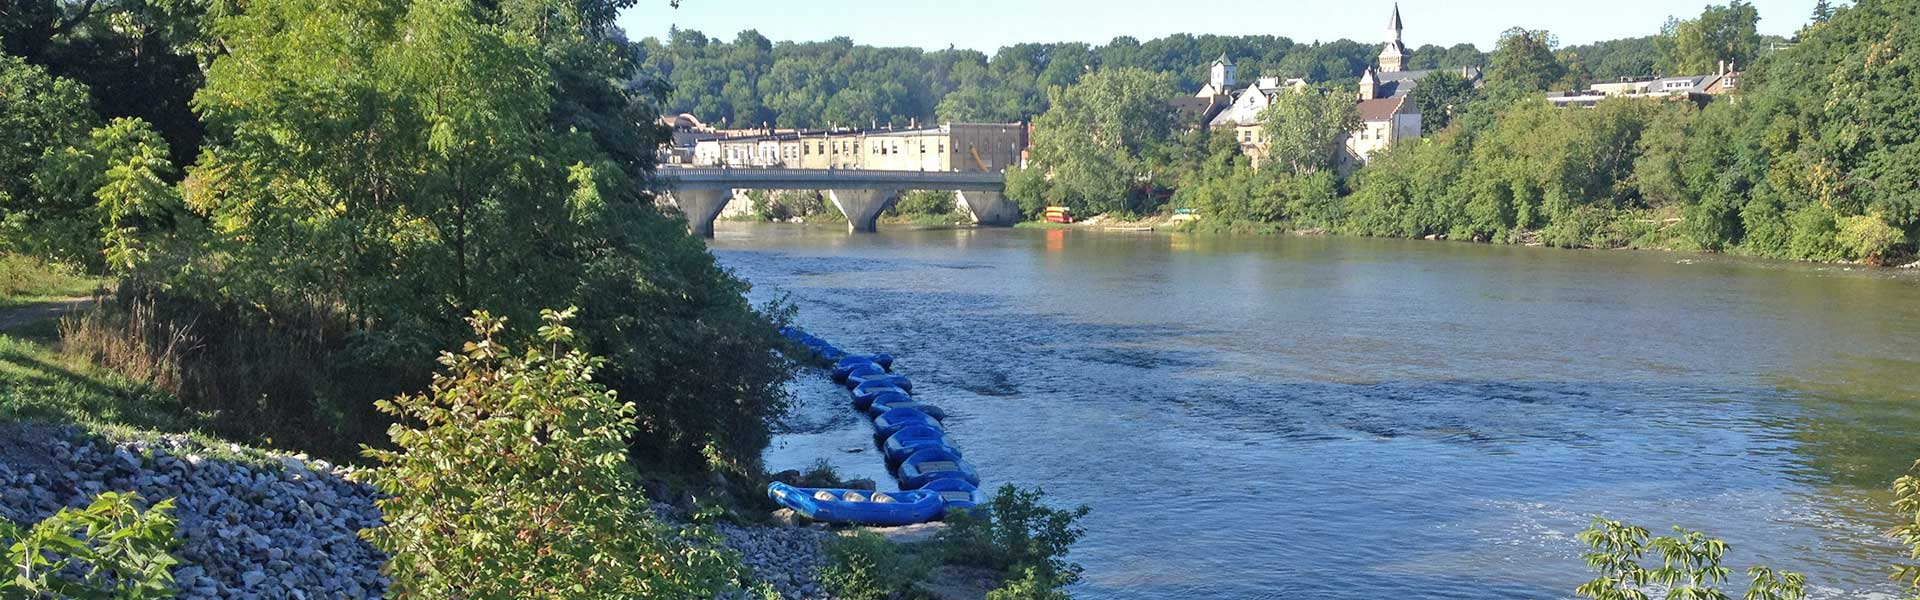 Grand River Rafts at Paris dam